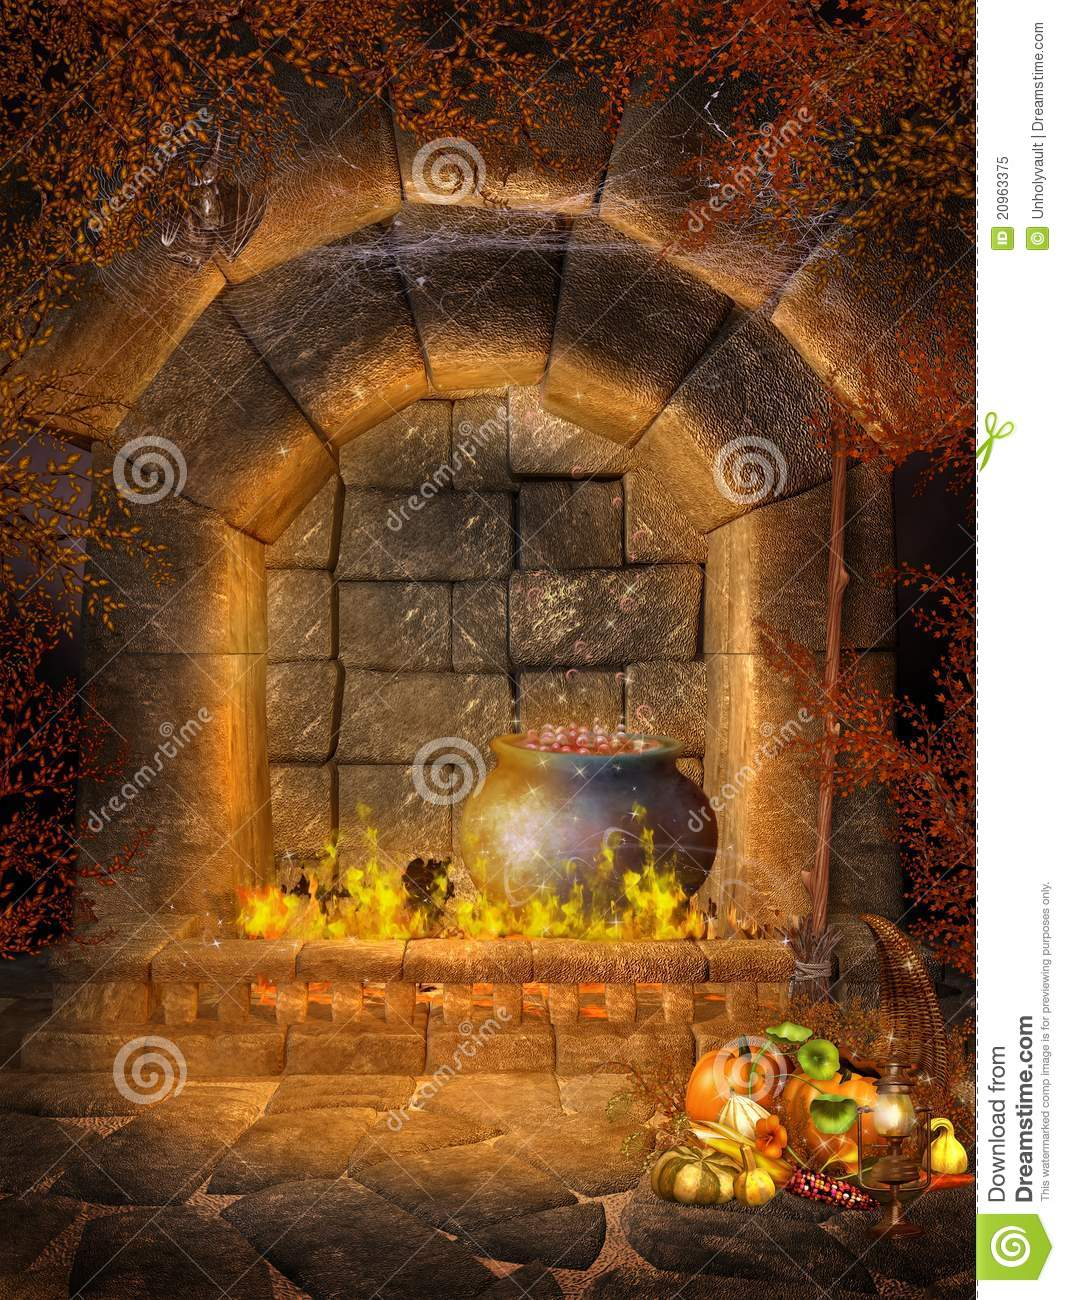 fantasy fireplace with bats royalty free stock photo image 20963375